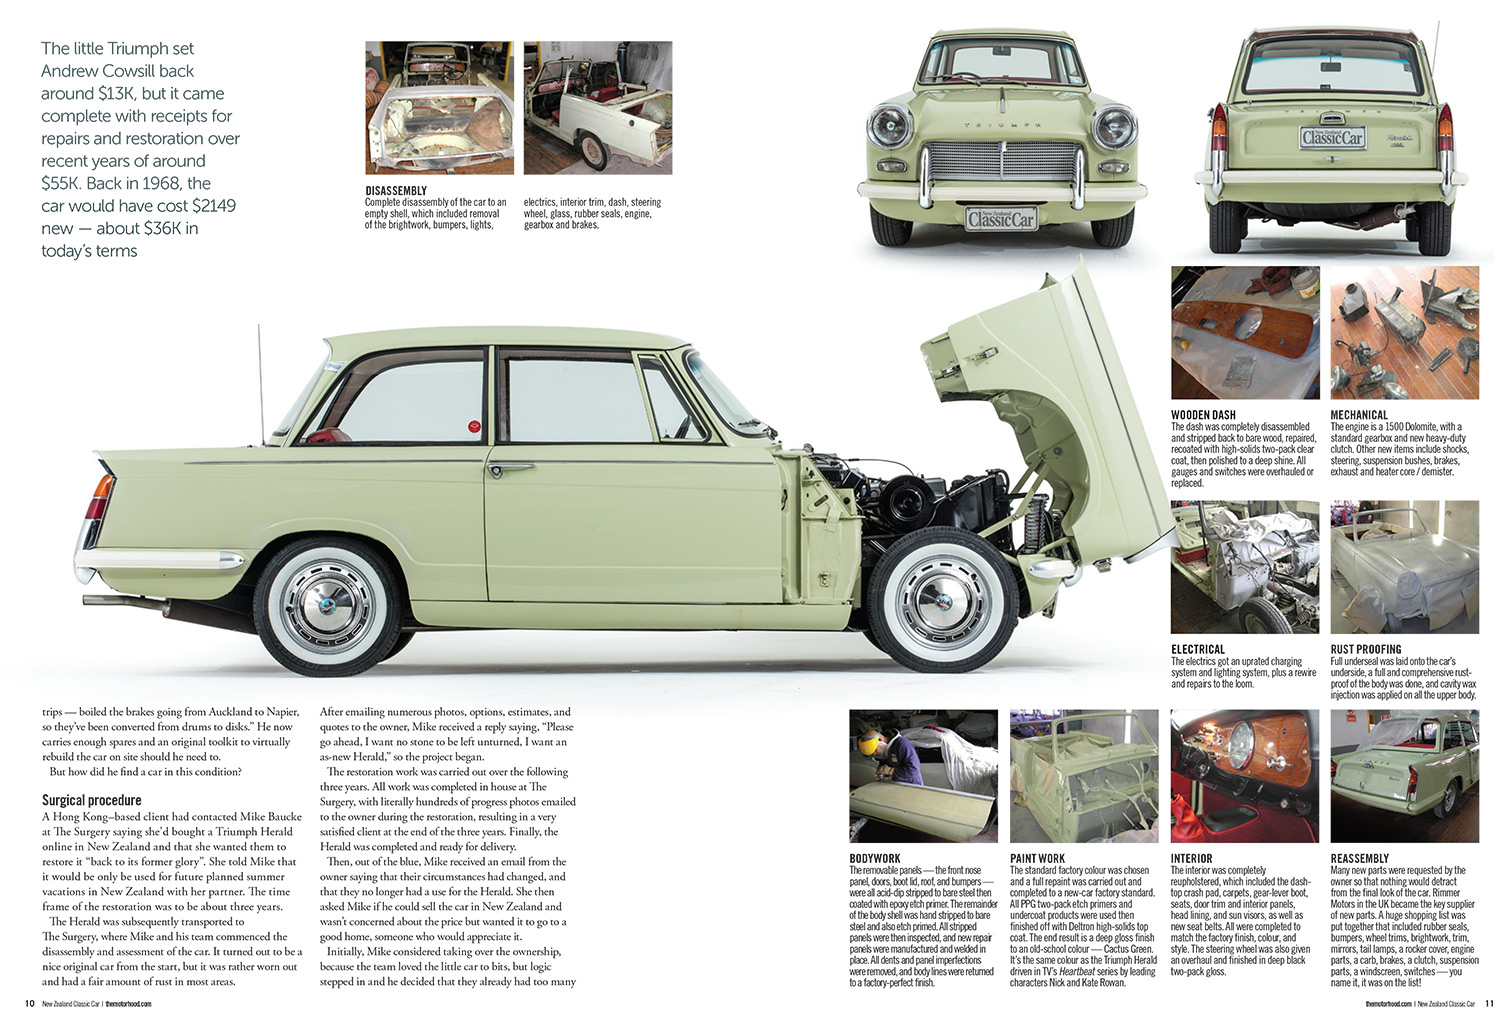 1968 triumph herald – hark this herald's angles sing – the surgery